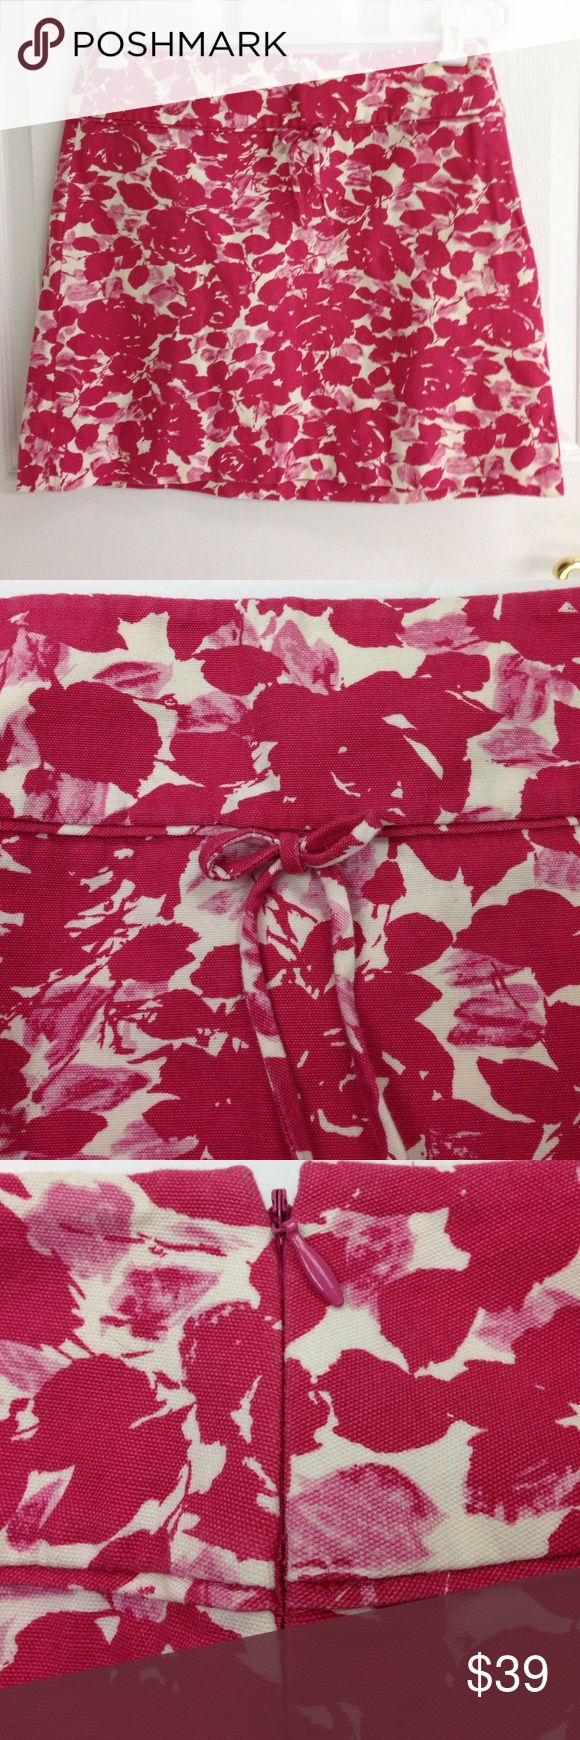 """J. Crew Pink and White Skirt HOST PICK J. Crew hot pink and creamy white floral skirt. Side zipper. Skirt is not lined. Size 6 Skirt length 17"""". Waste 15"""" across laying flat. 100% cotton. In excellent pre worn condition. J. Crew Skirts Mini"""